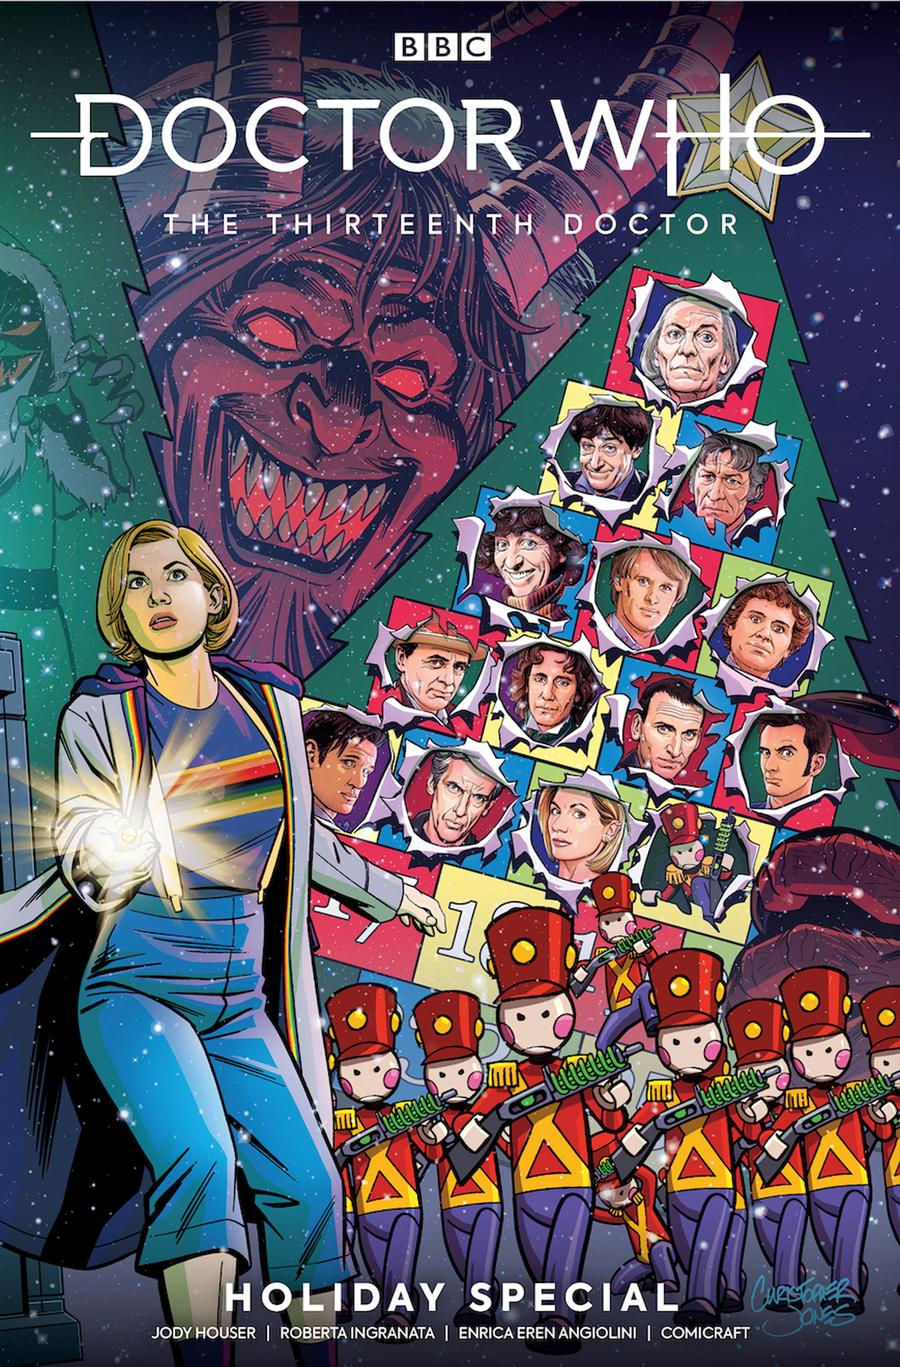 LCSD 2019 Doctor Who 13th Doctor Holiday Special #2 Variant Christopher Jones Connecting Cover